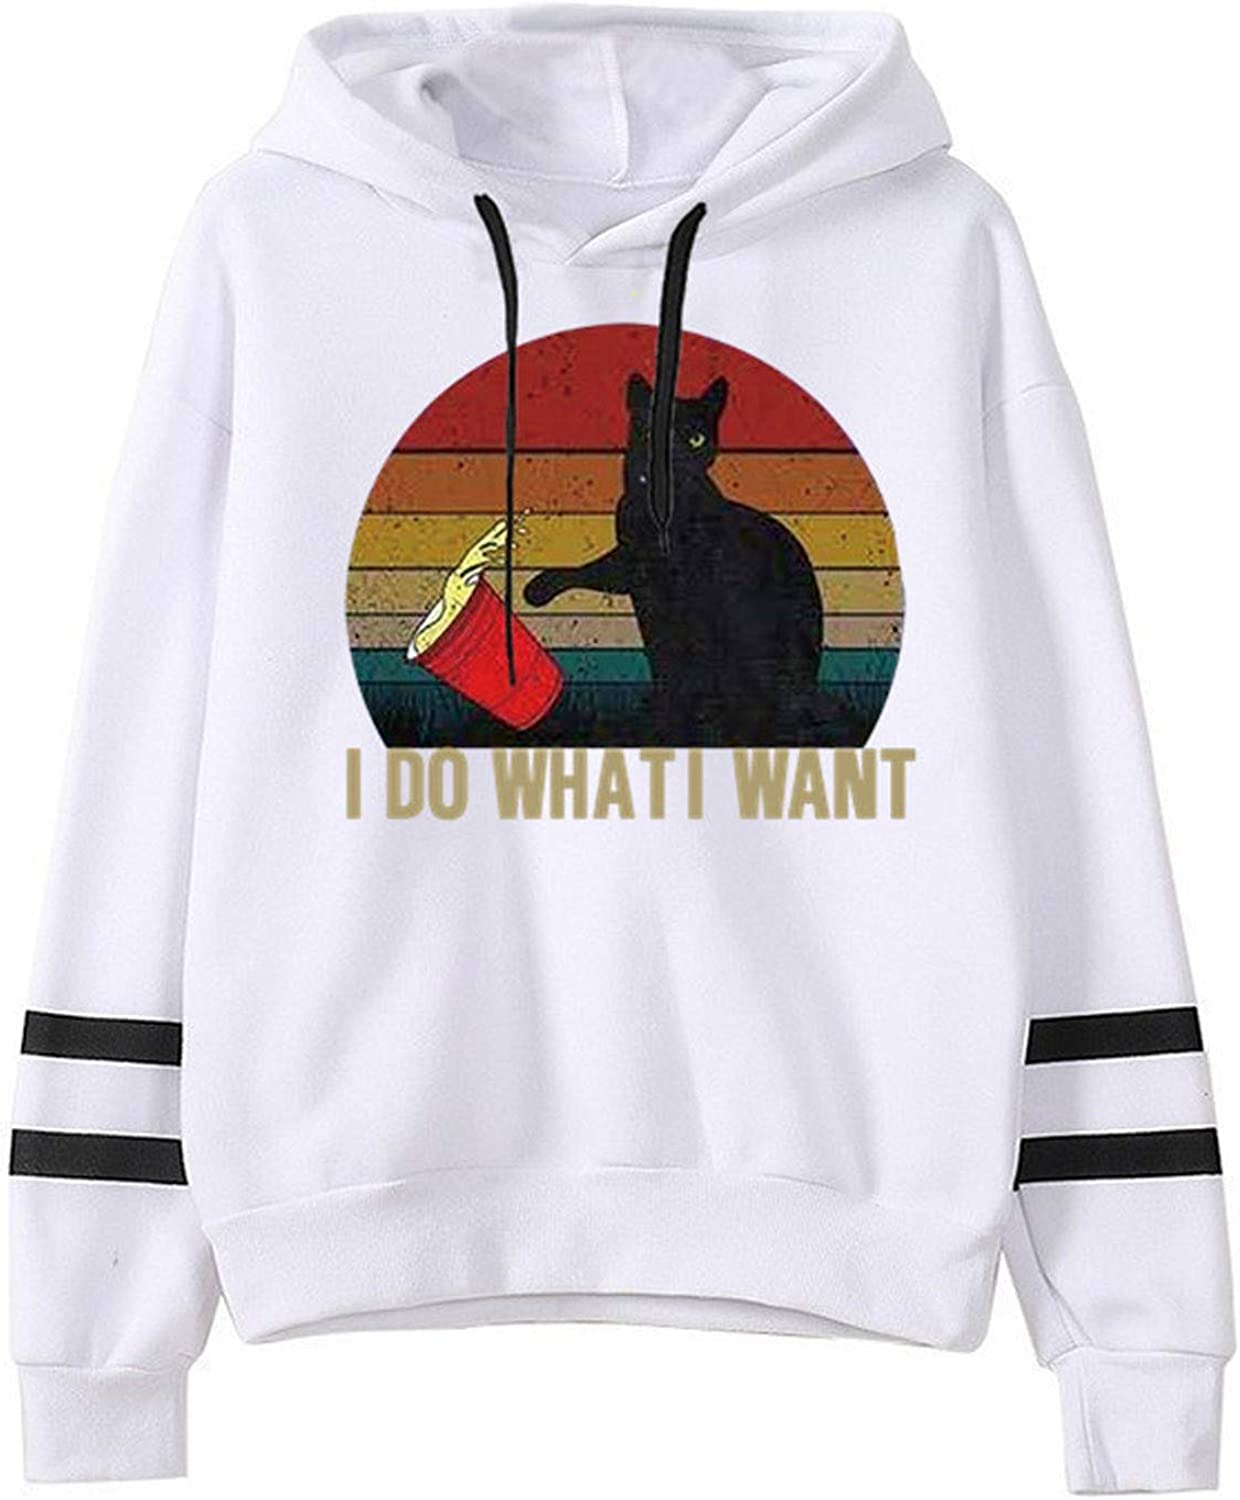 Womens I Do What I Want Hoodie Hoodie Teen Girls Cat Graphic Print Pullover Hooded Sweatshirt with Stripes on Arms